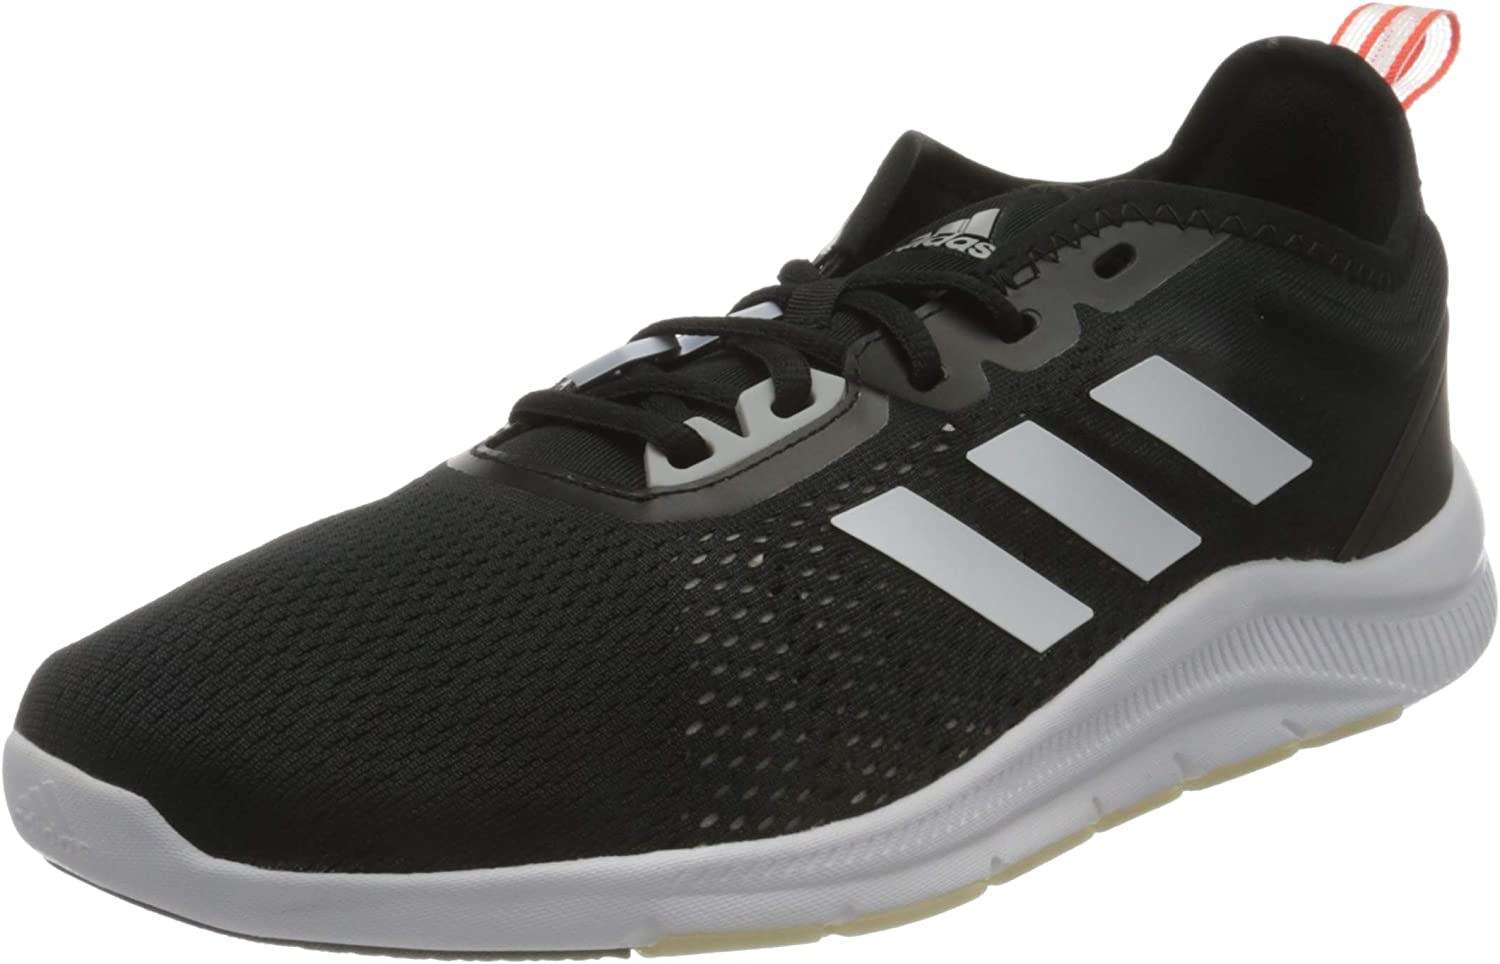 adidas Men's Free Time and Sportwear Cross Training Shoes